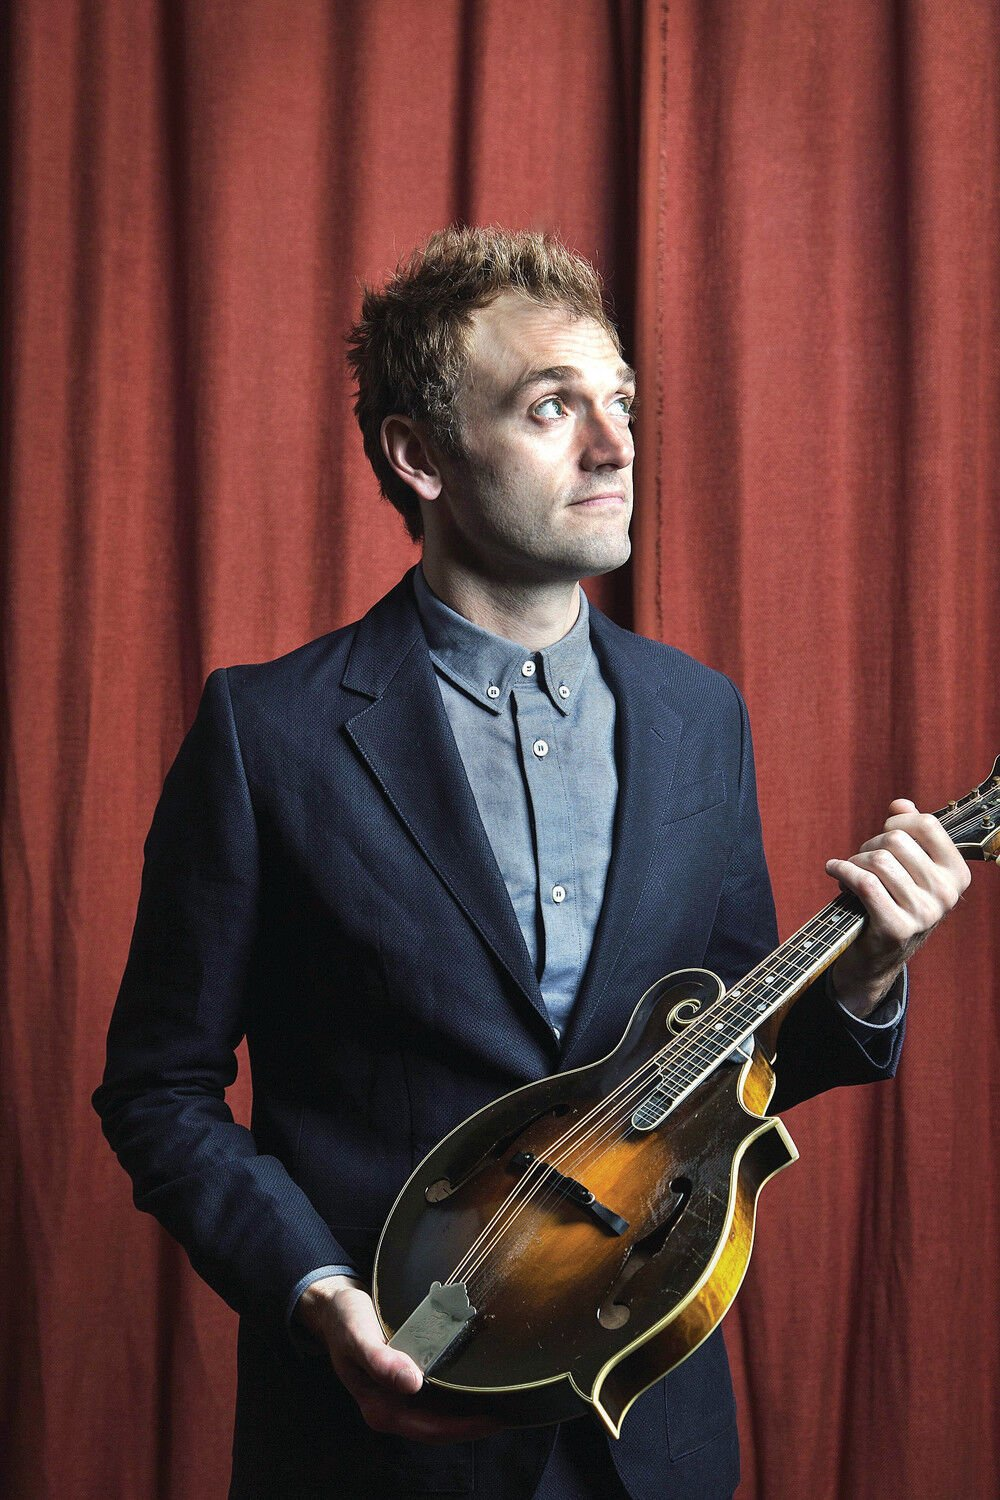 Thile seeks to bring joy with 'Live from Here'